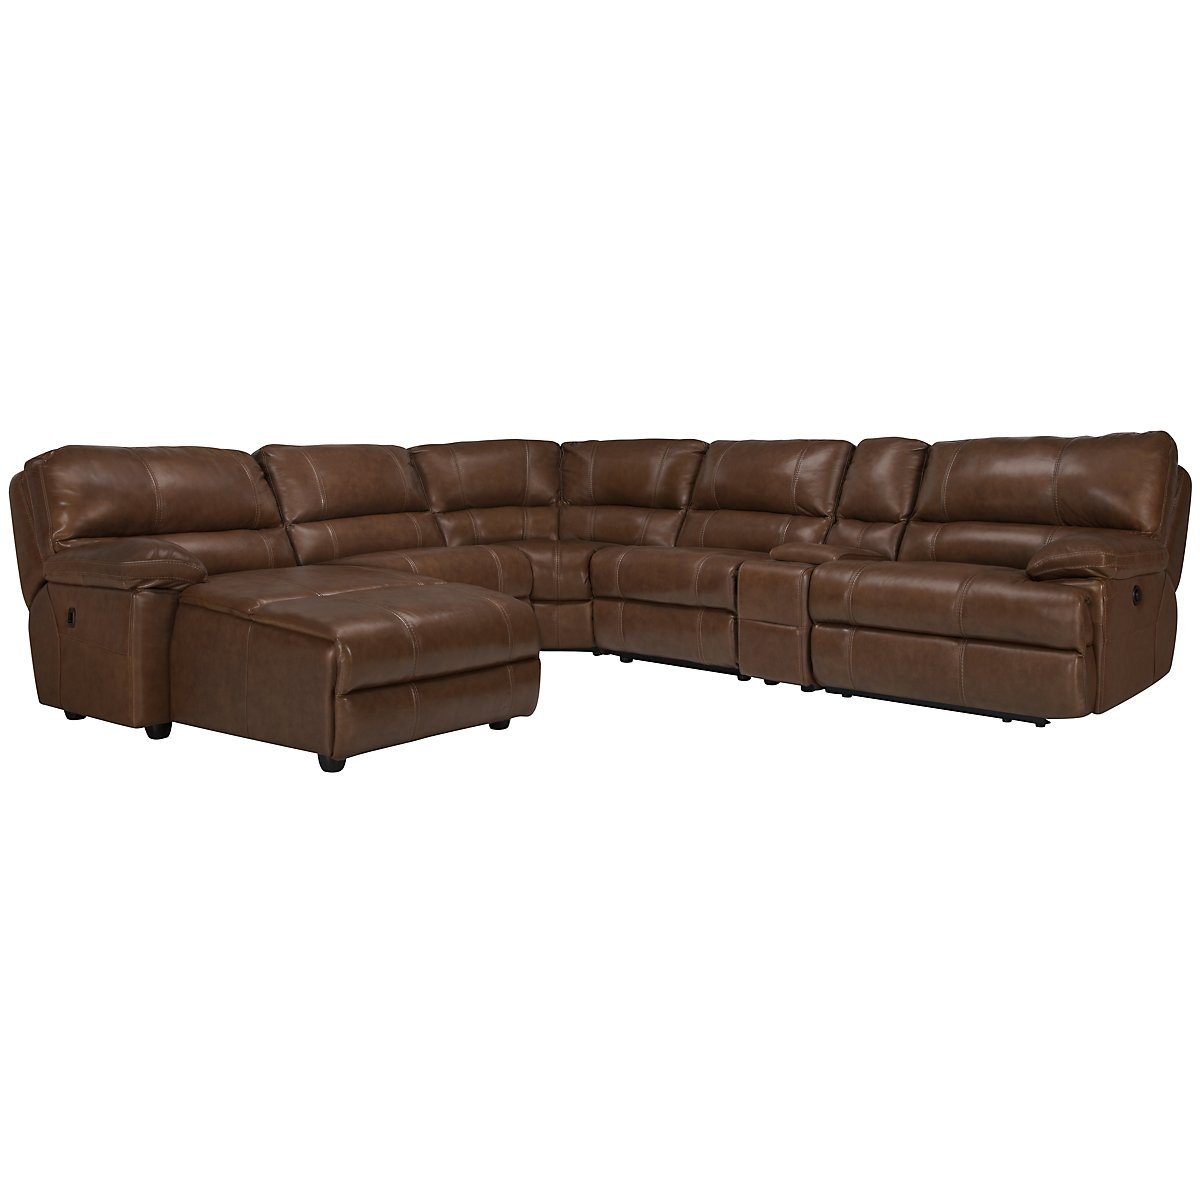 Alton2 Medium Brown Leather & Vinyl Left Chaise Power Reclining Sectional